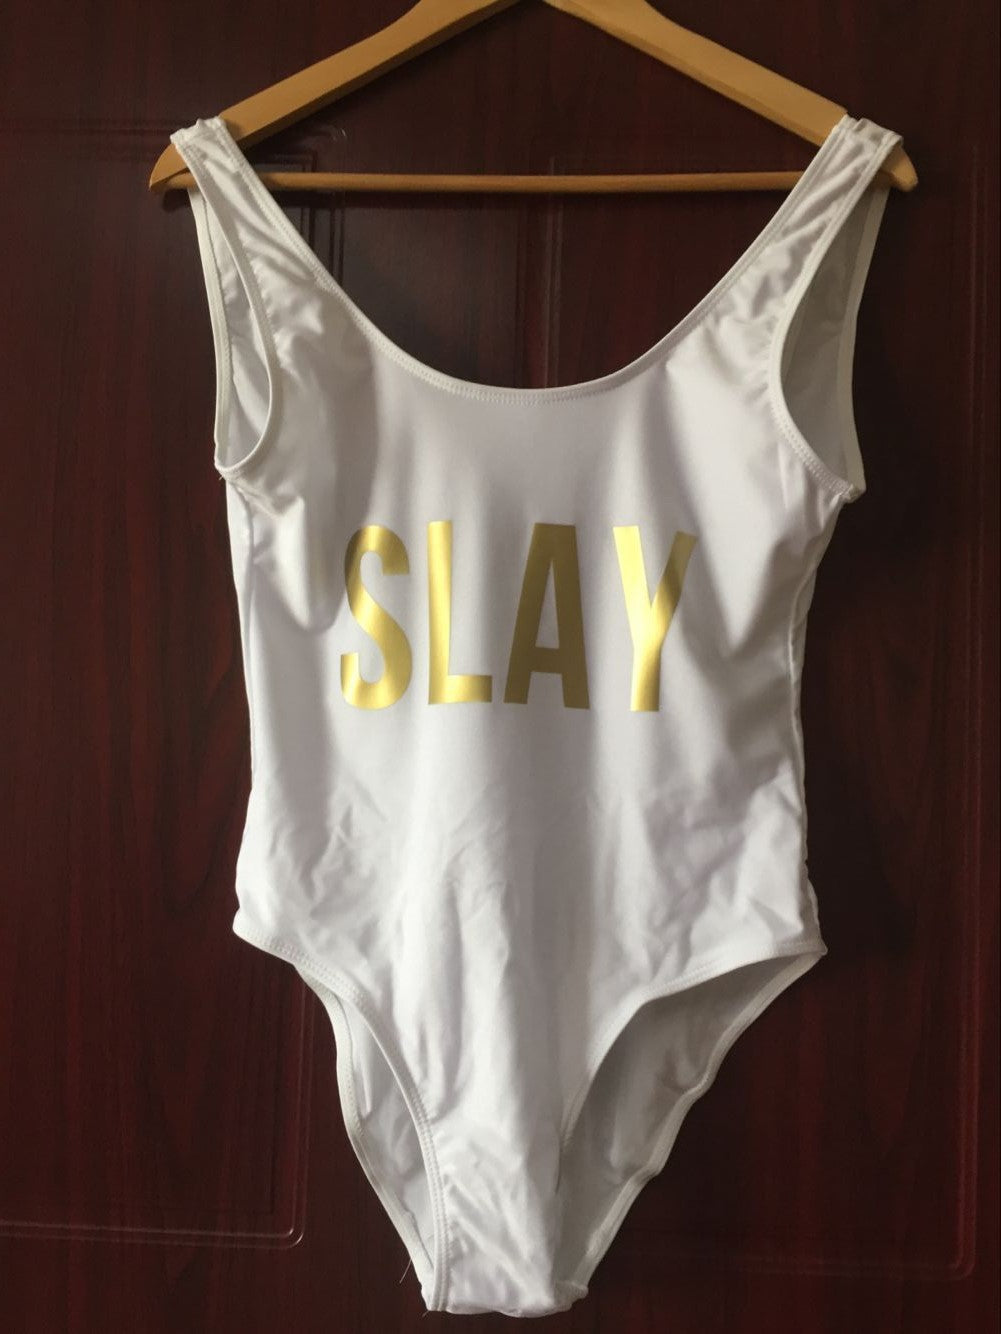 SLAY Gold Letter One Piece Bodysuit Siwmsuits Girl Beachwear Bathing Suits Jumpsuits Playsuit High Waist Bikini Bathing Suits